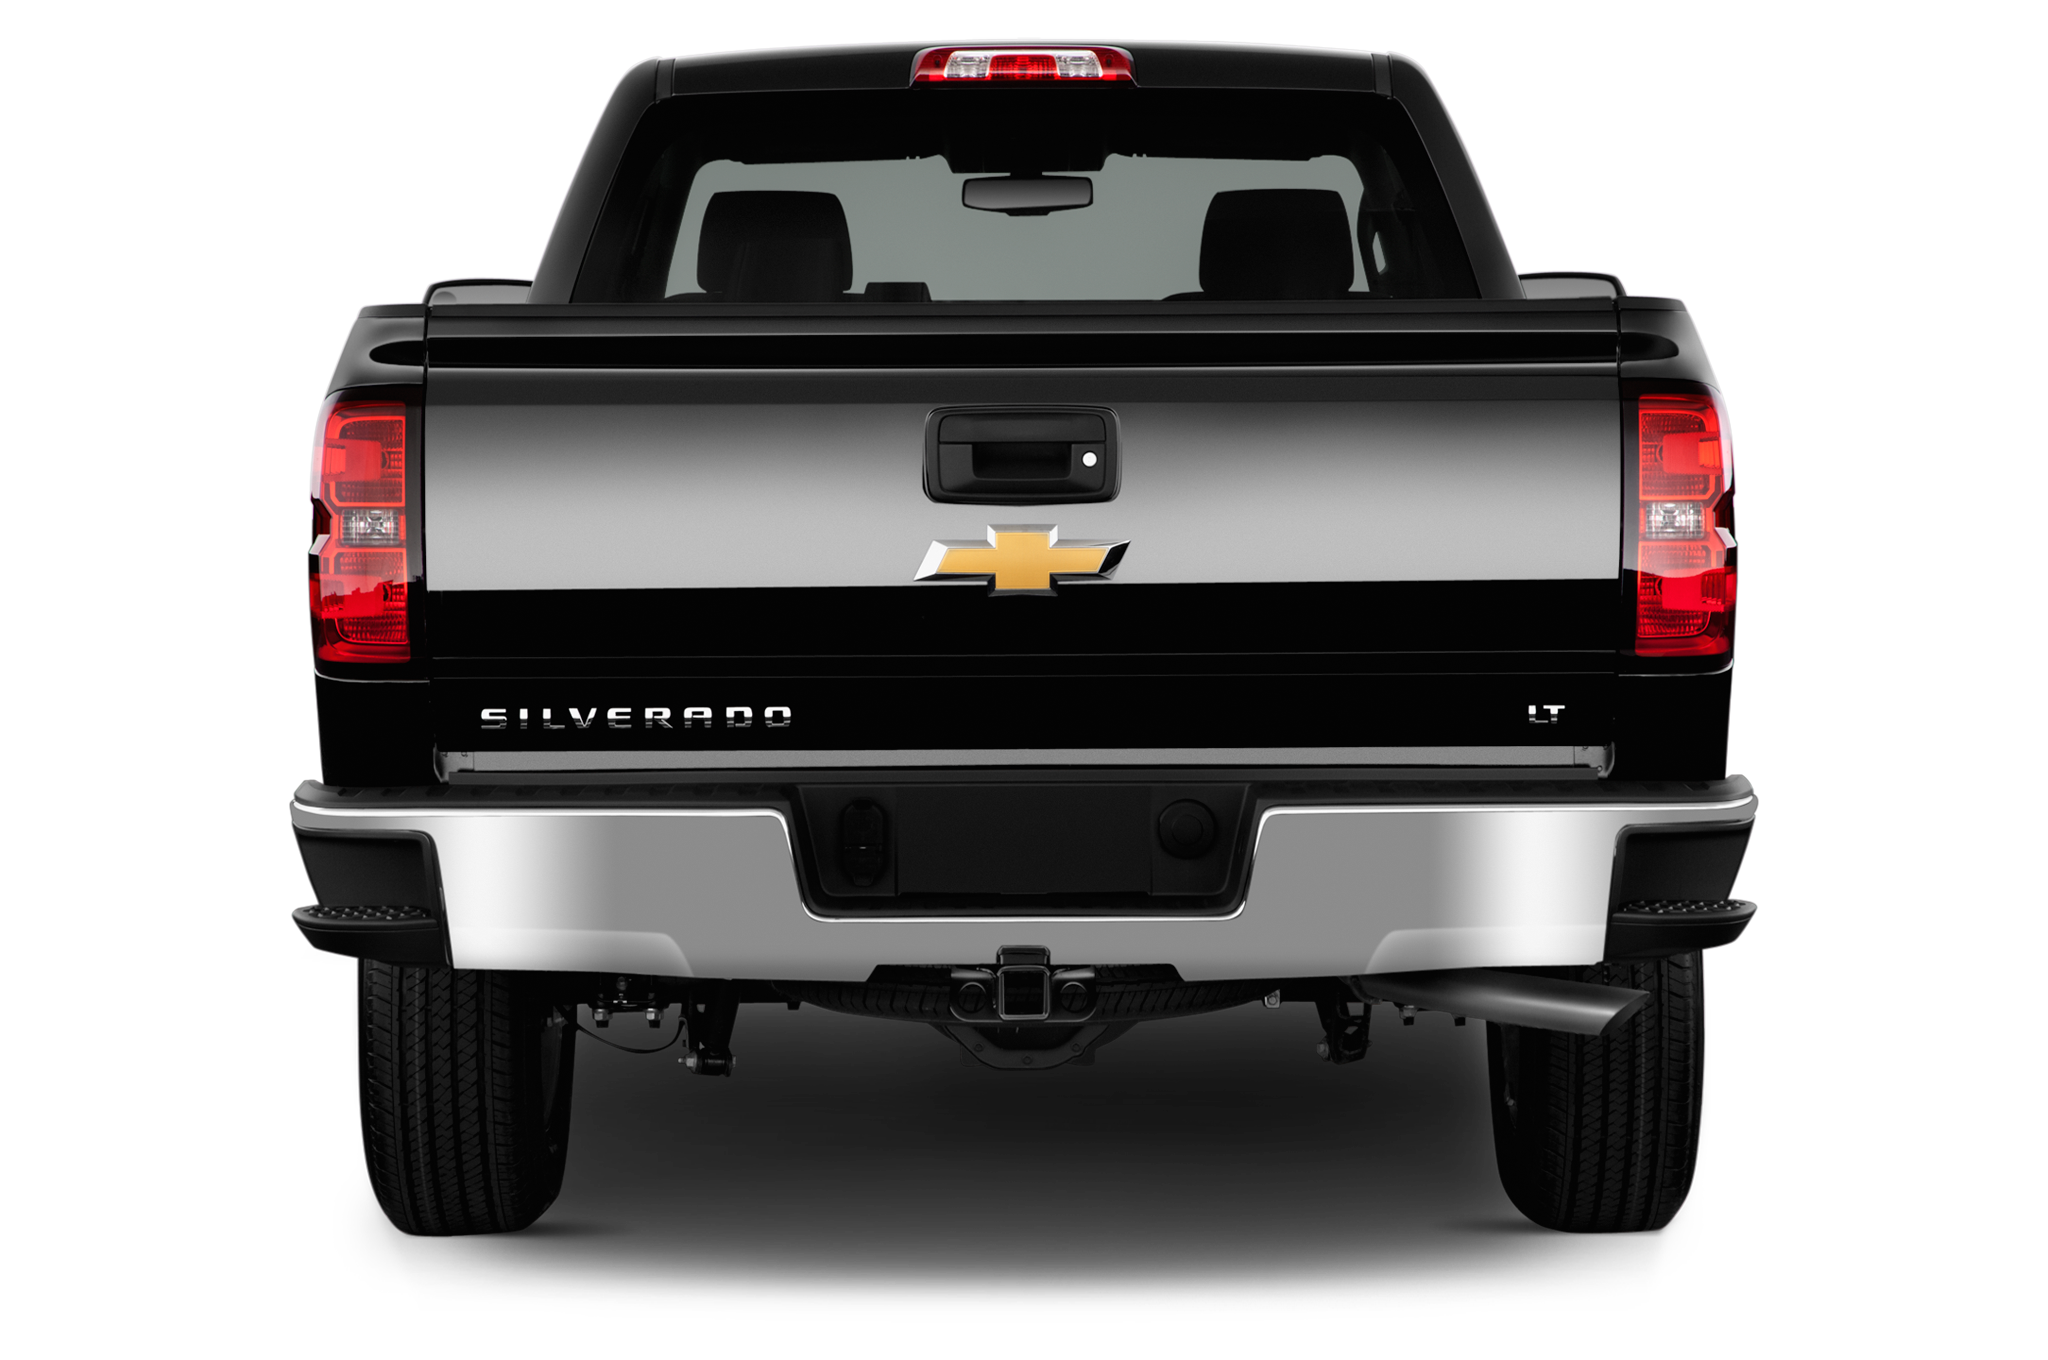 2014 Silverado 1500 Regular Cab Specifications | Autos Post